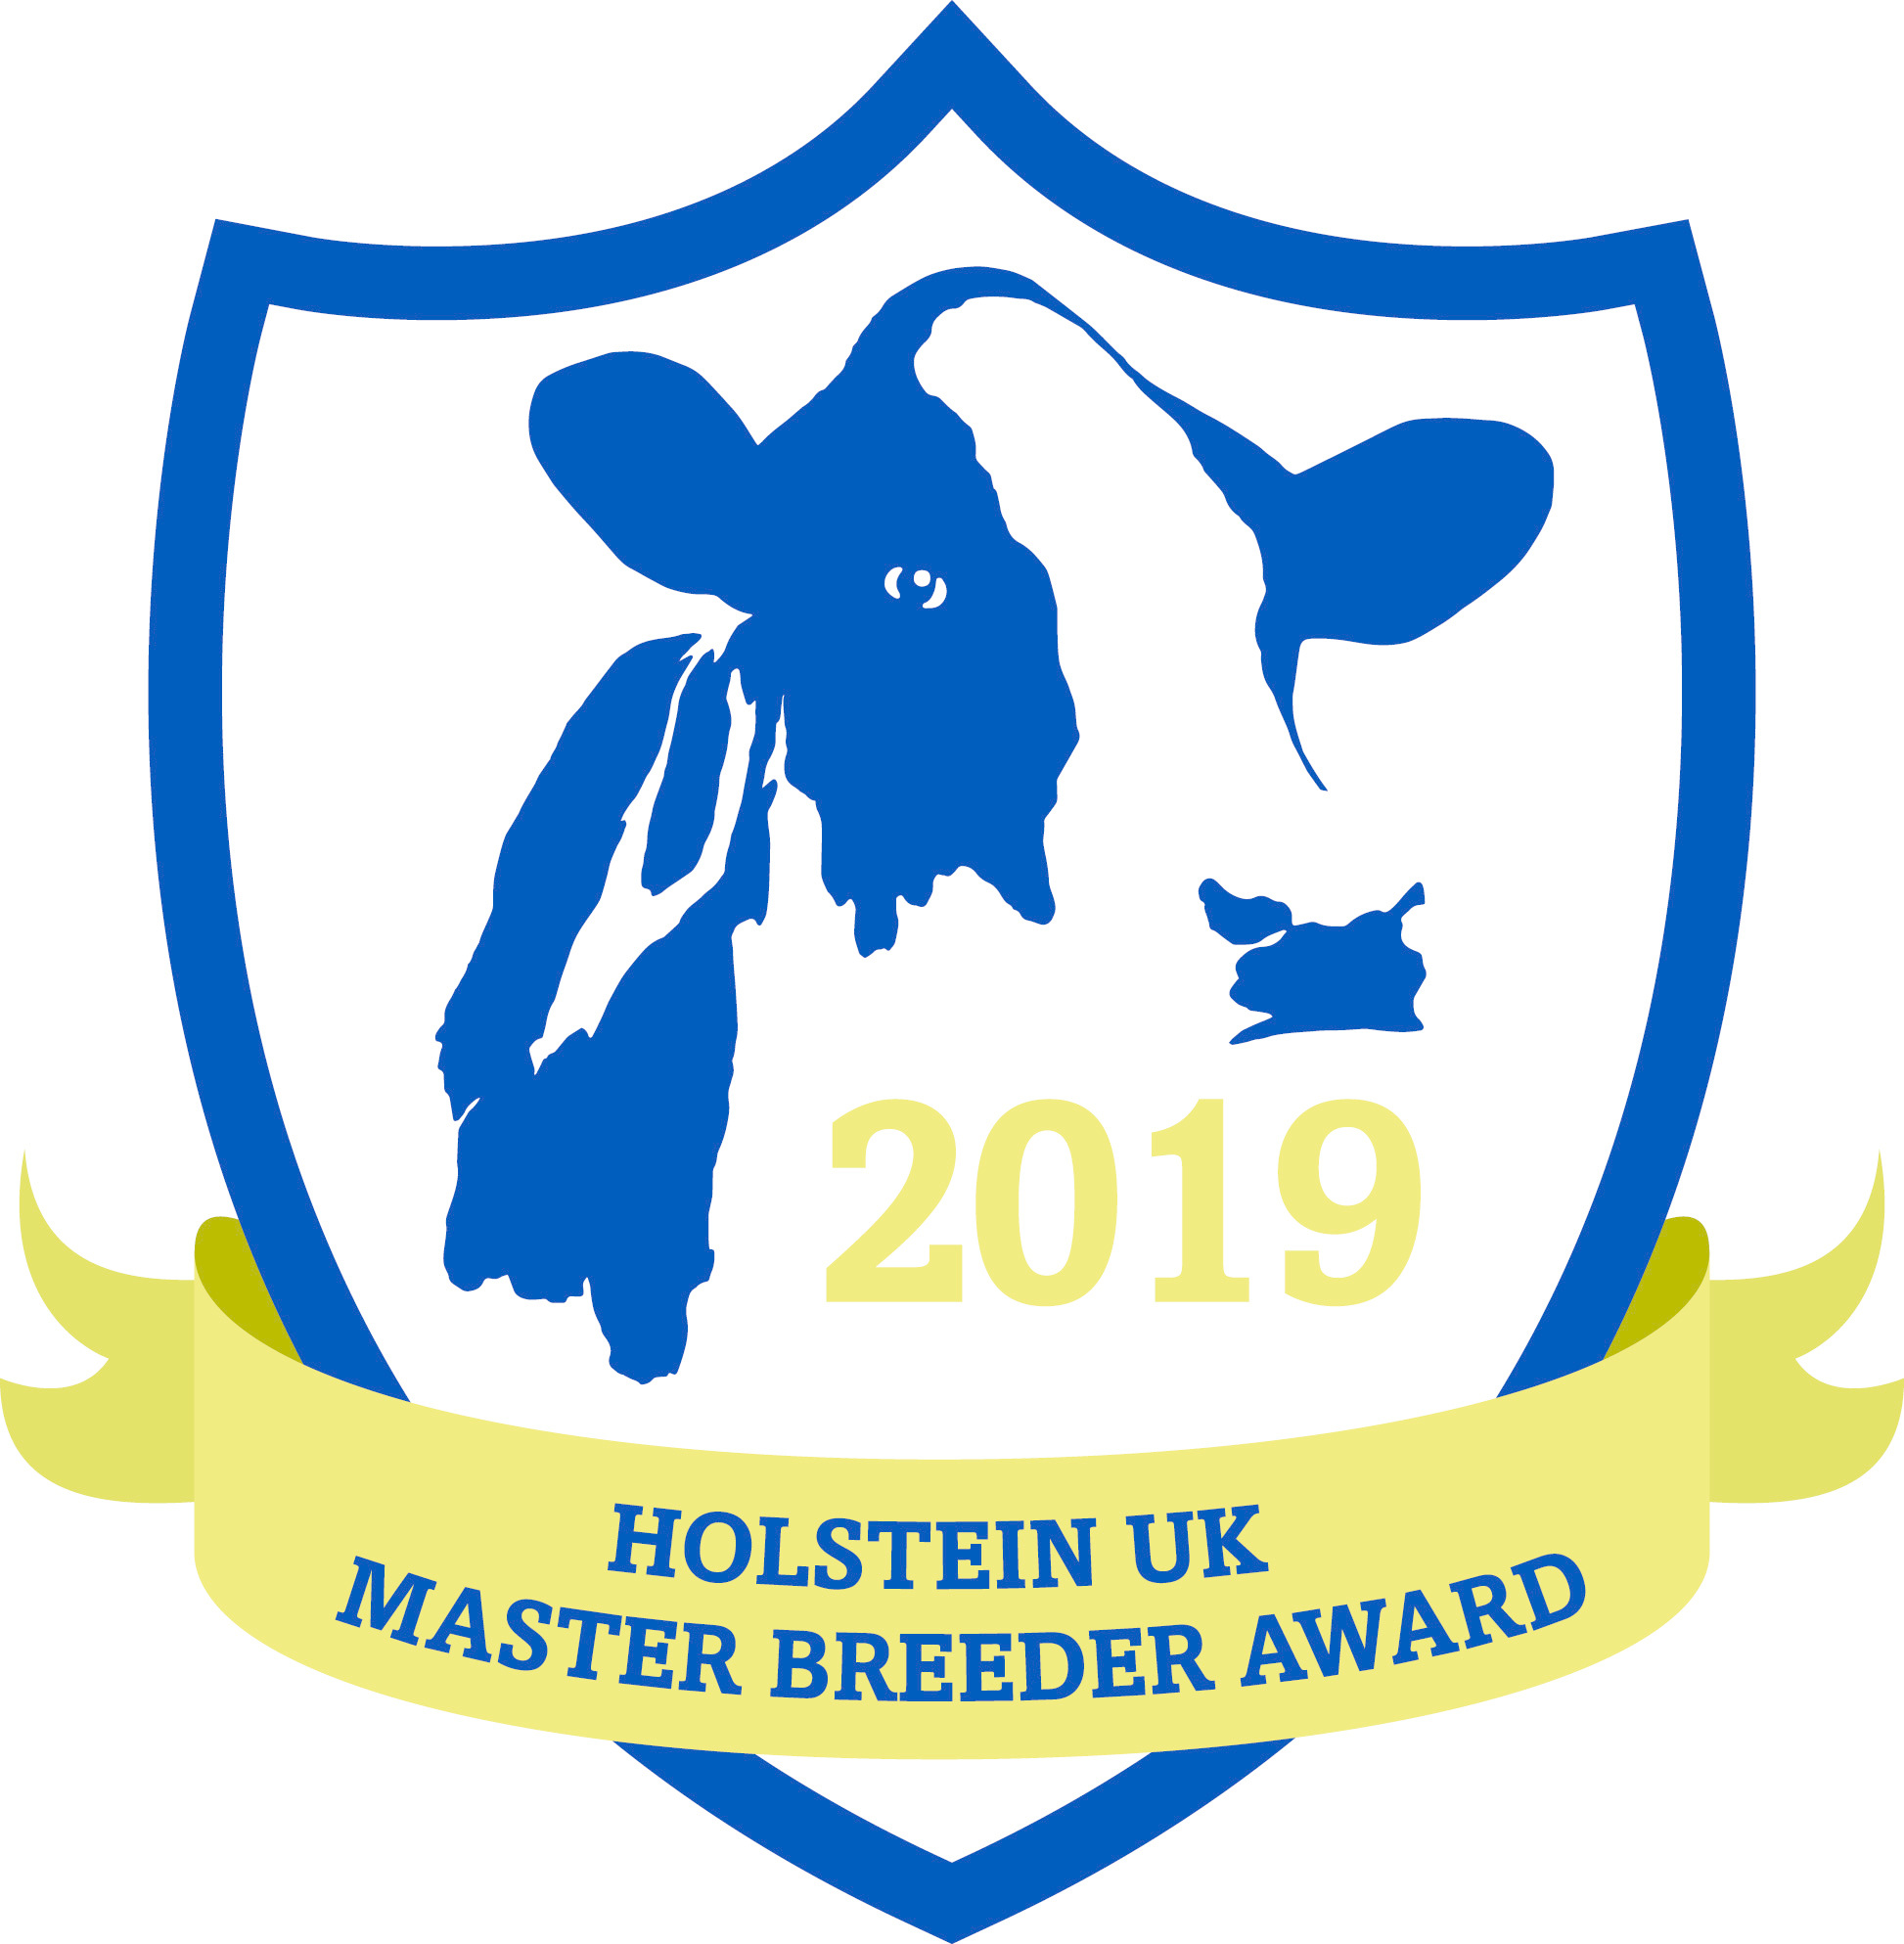 Holstein UK Master Breeder Award